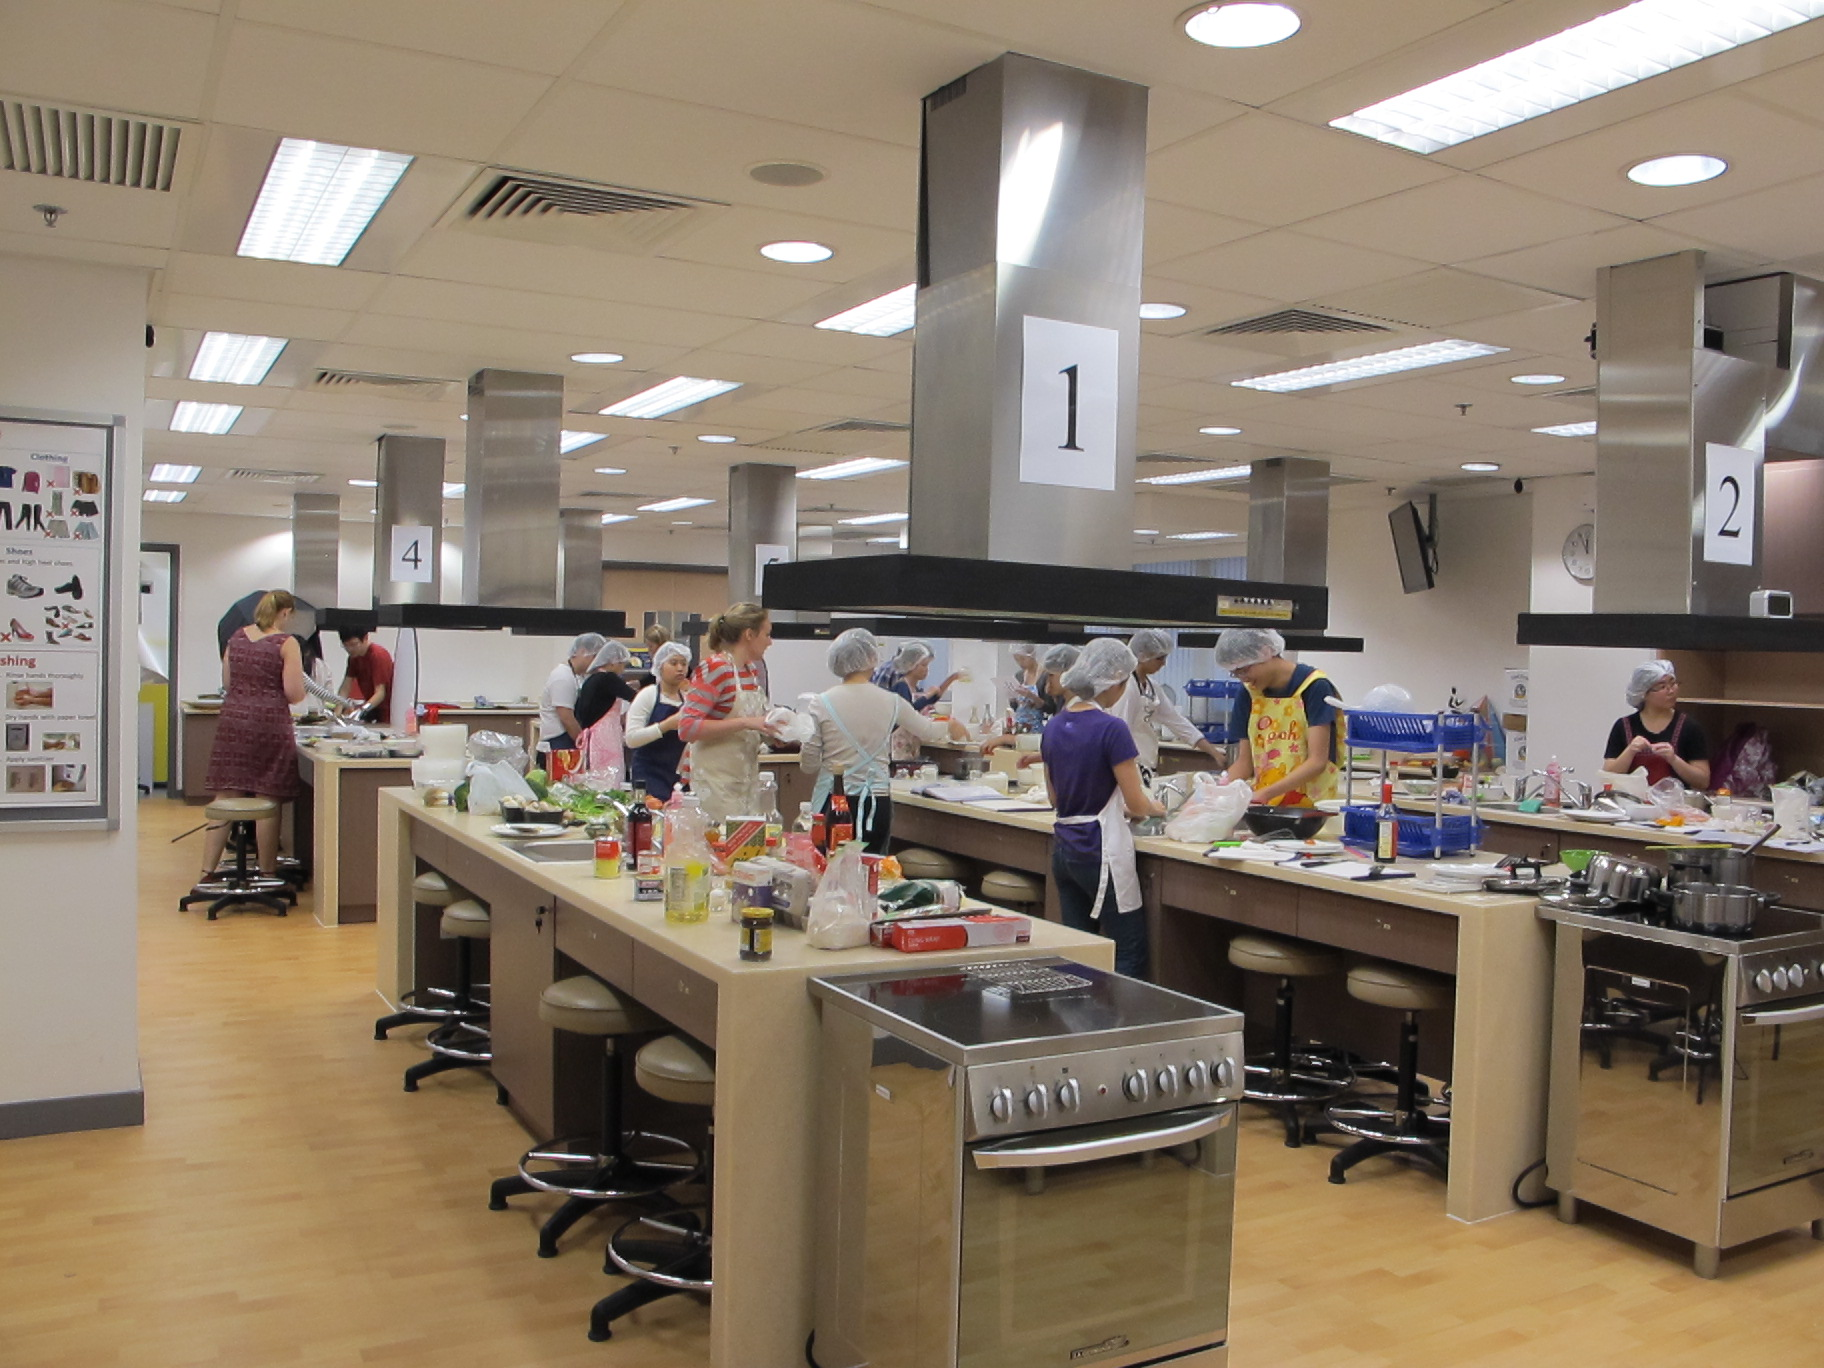 Feeding Hong Kong – Prepare nutritious, simple and low budget cookbook for the needy - Photo - 1